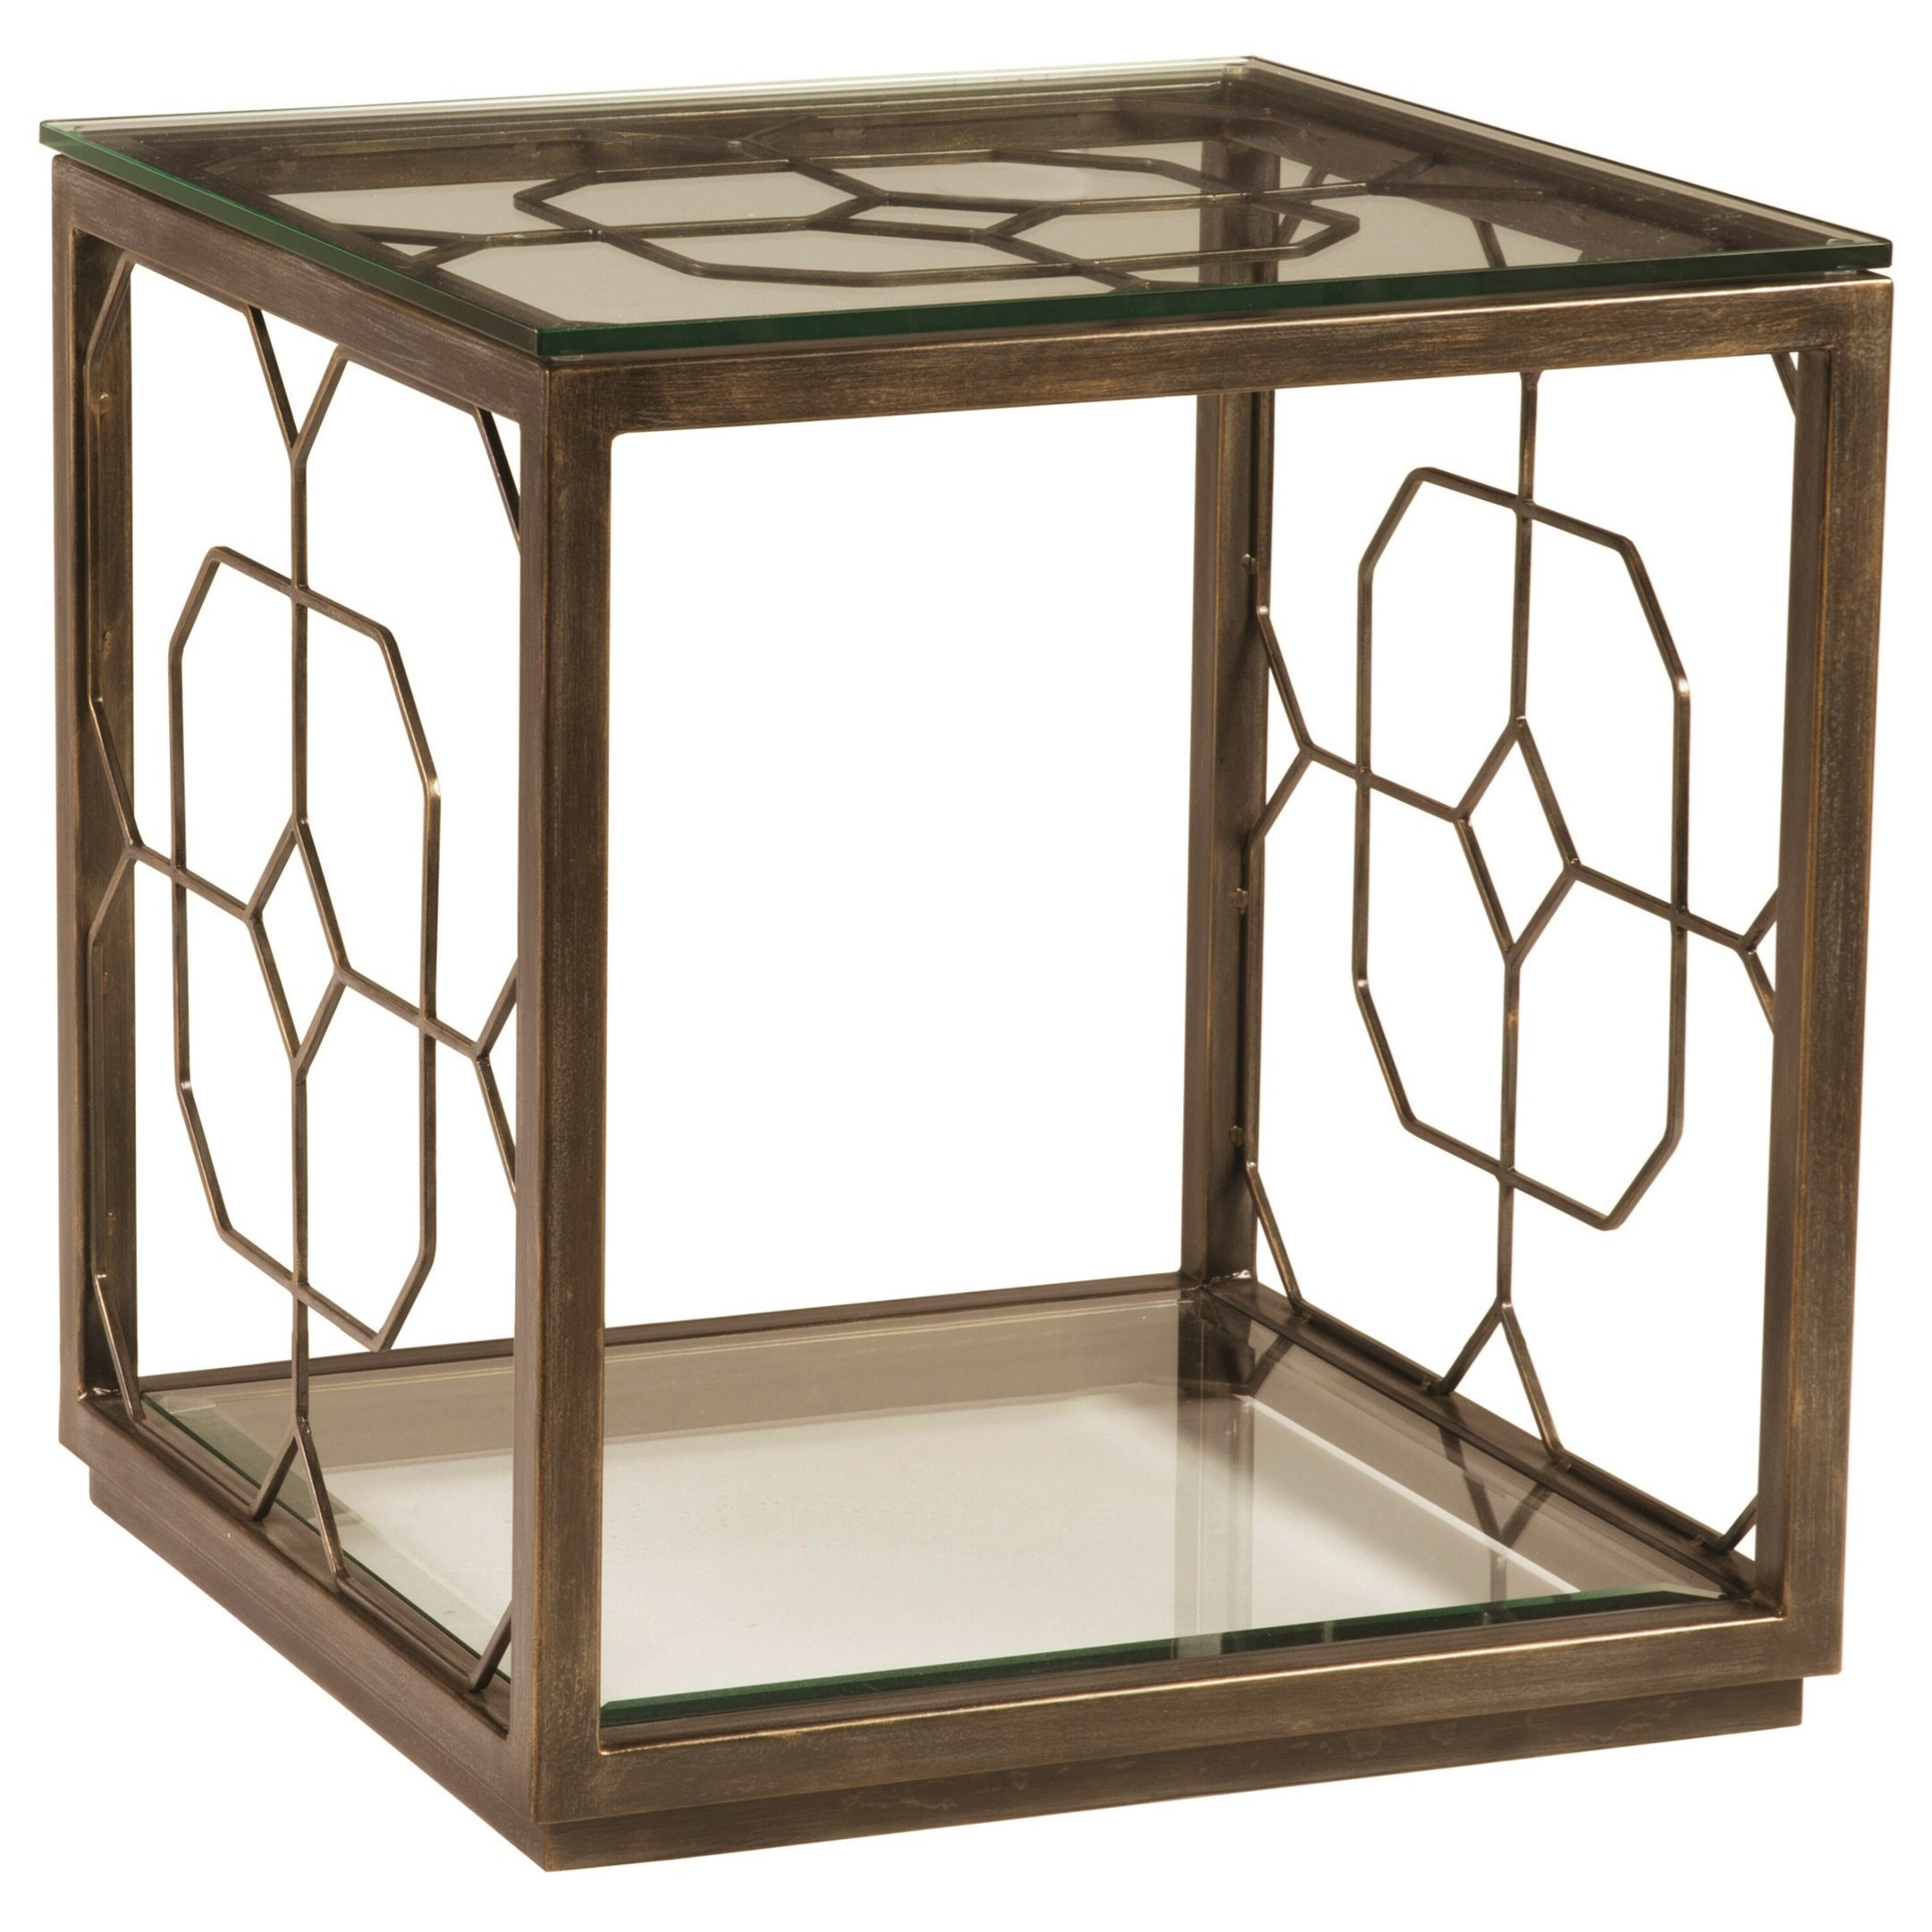 Metal Designs Honeycomb Square End Table by Artistica at Baer's Furniture